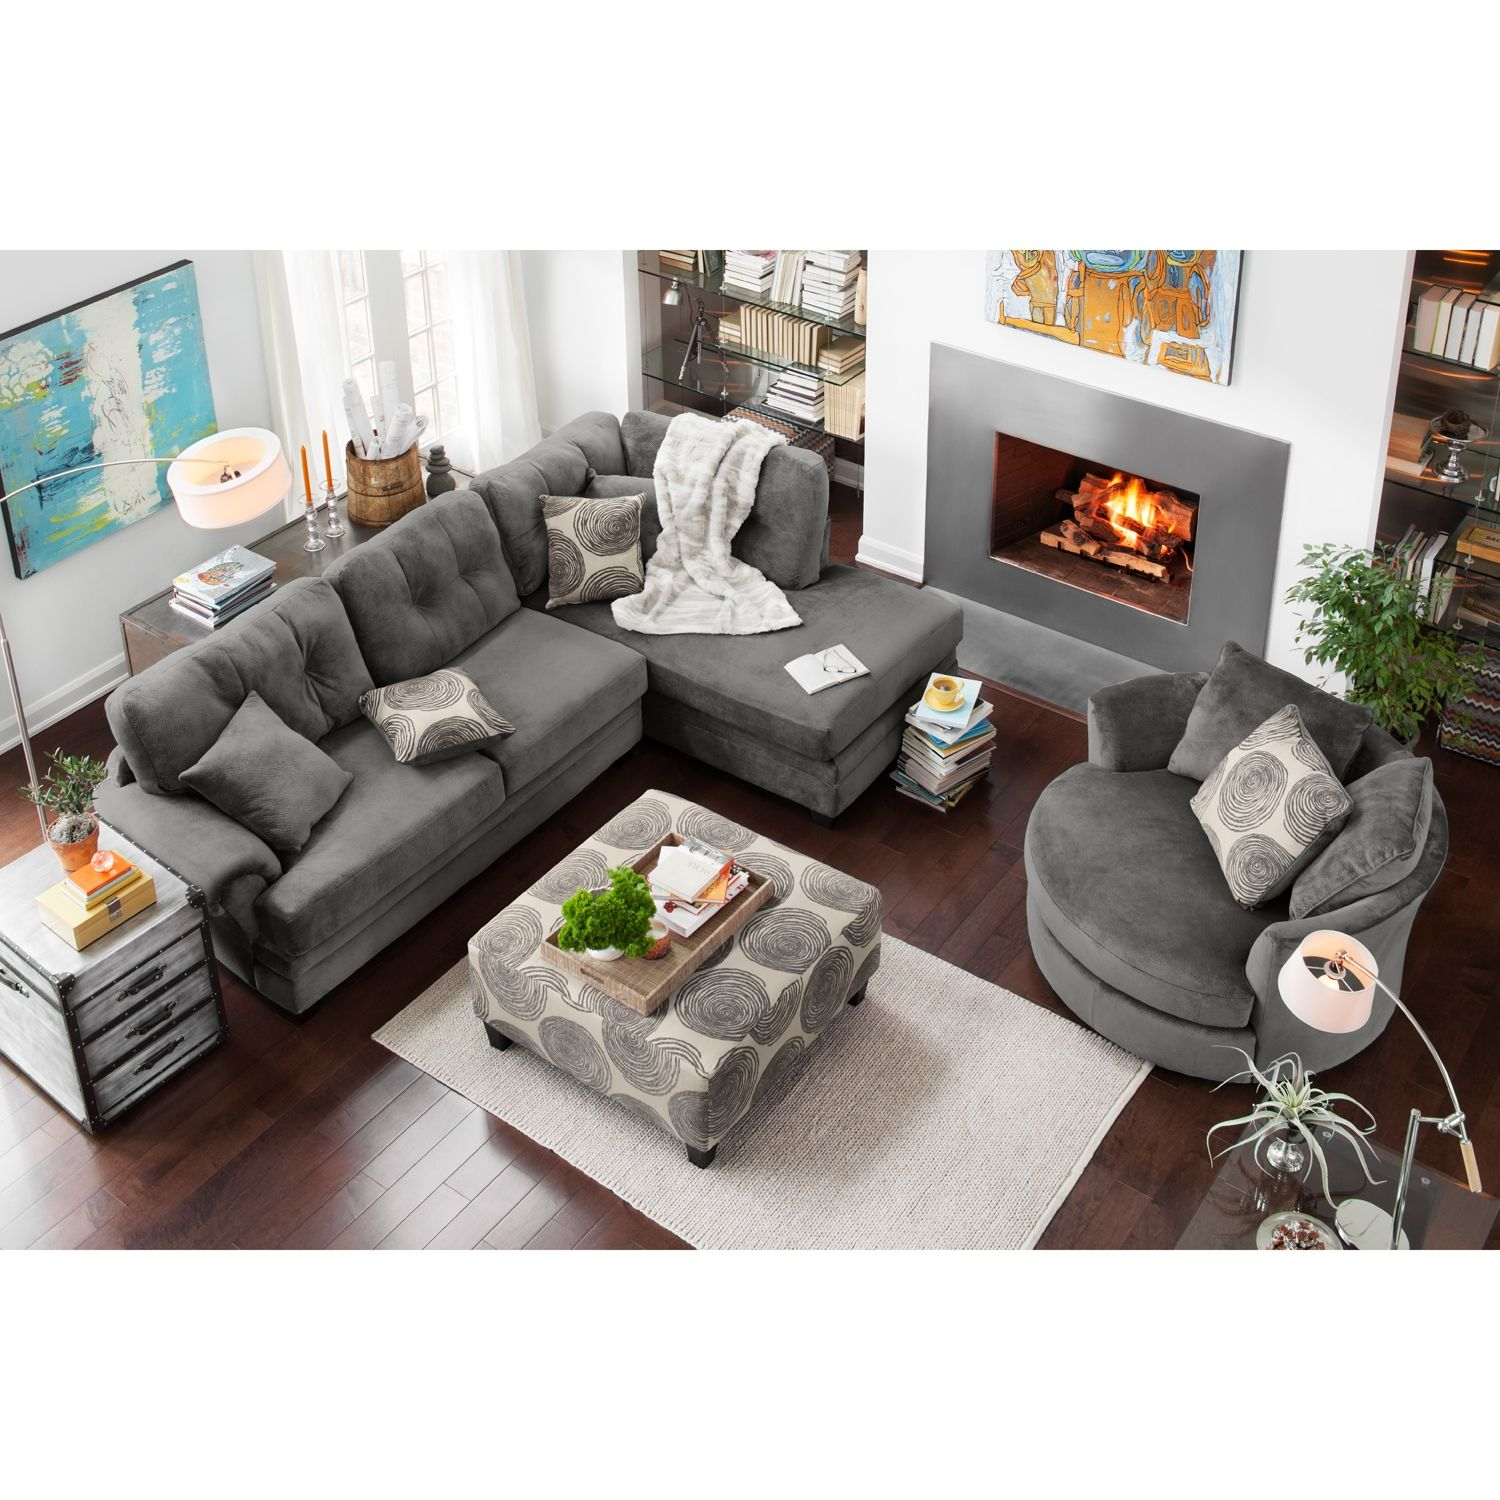 suitable tag cool capture grey of gray room ultimate with living the chaise lounge articles awesome sofa sectional